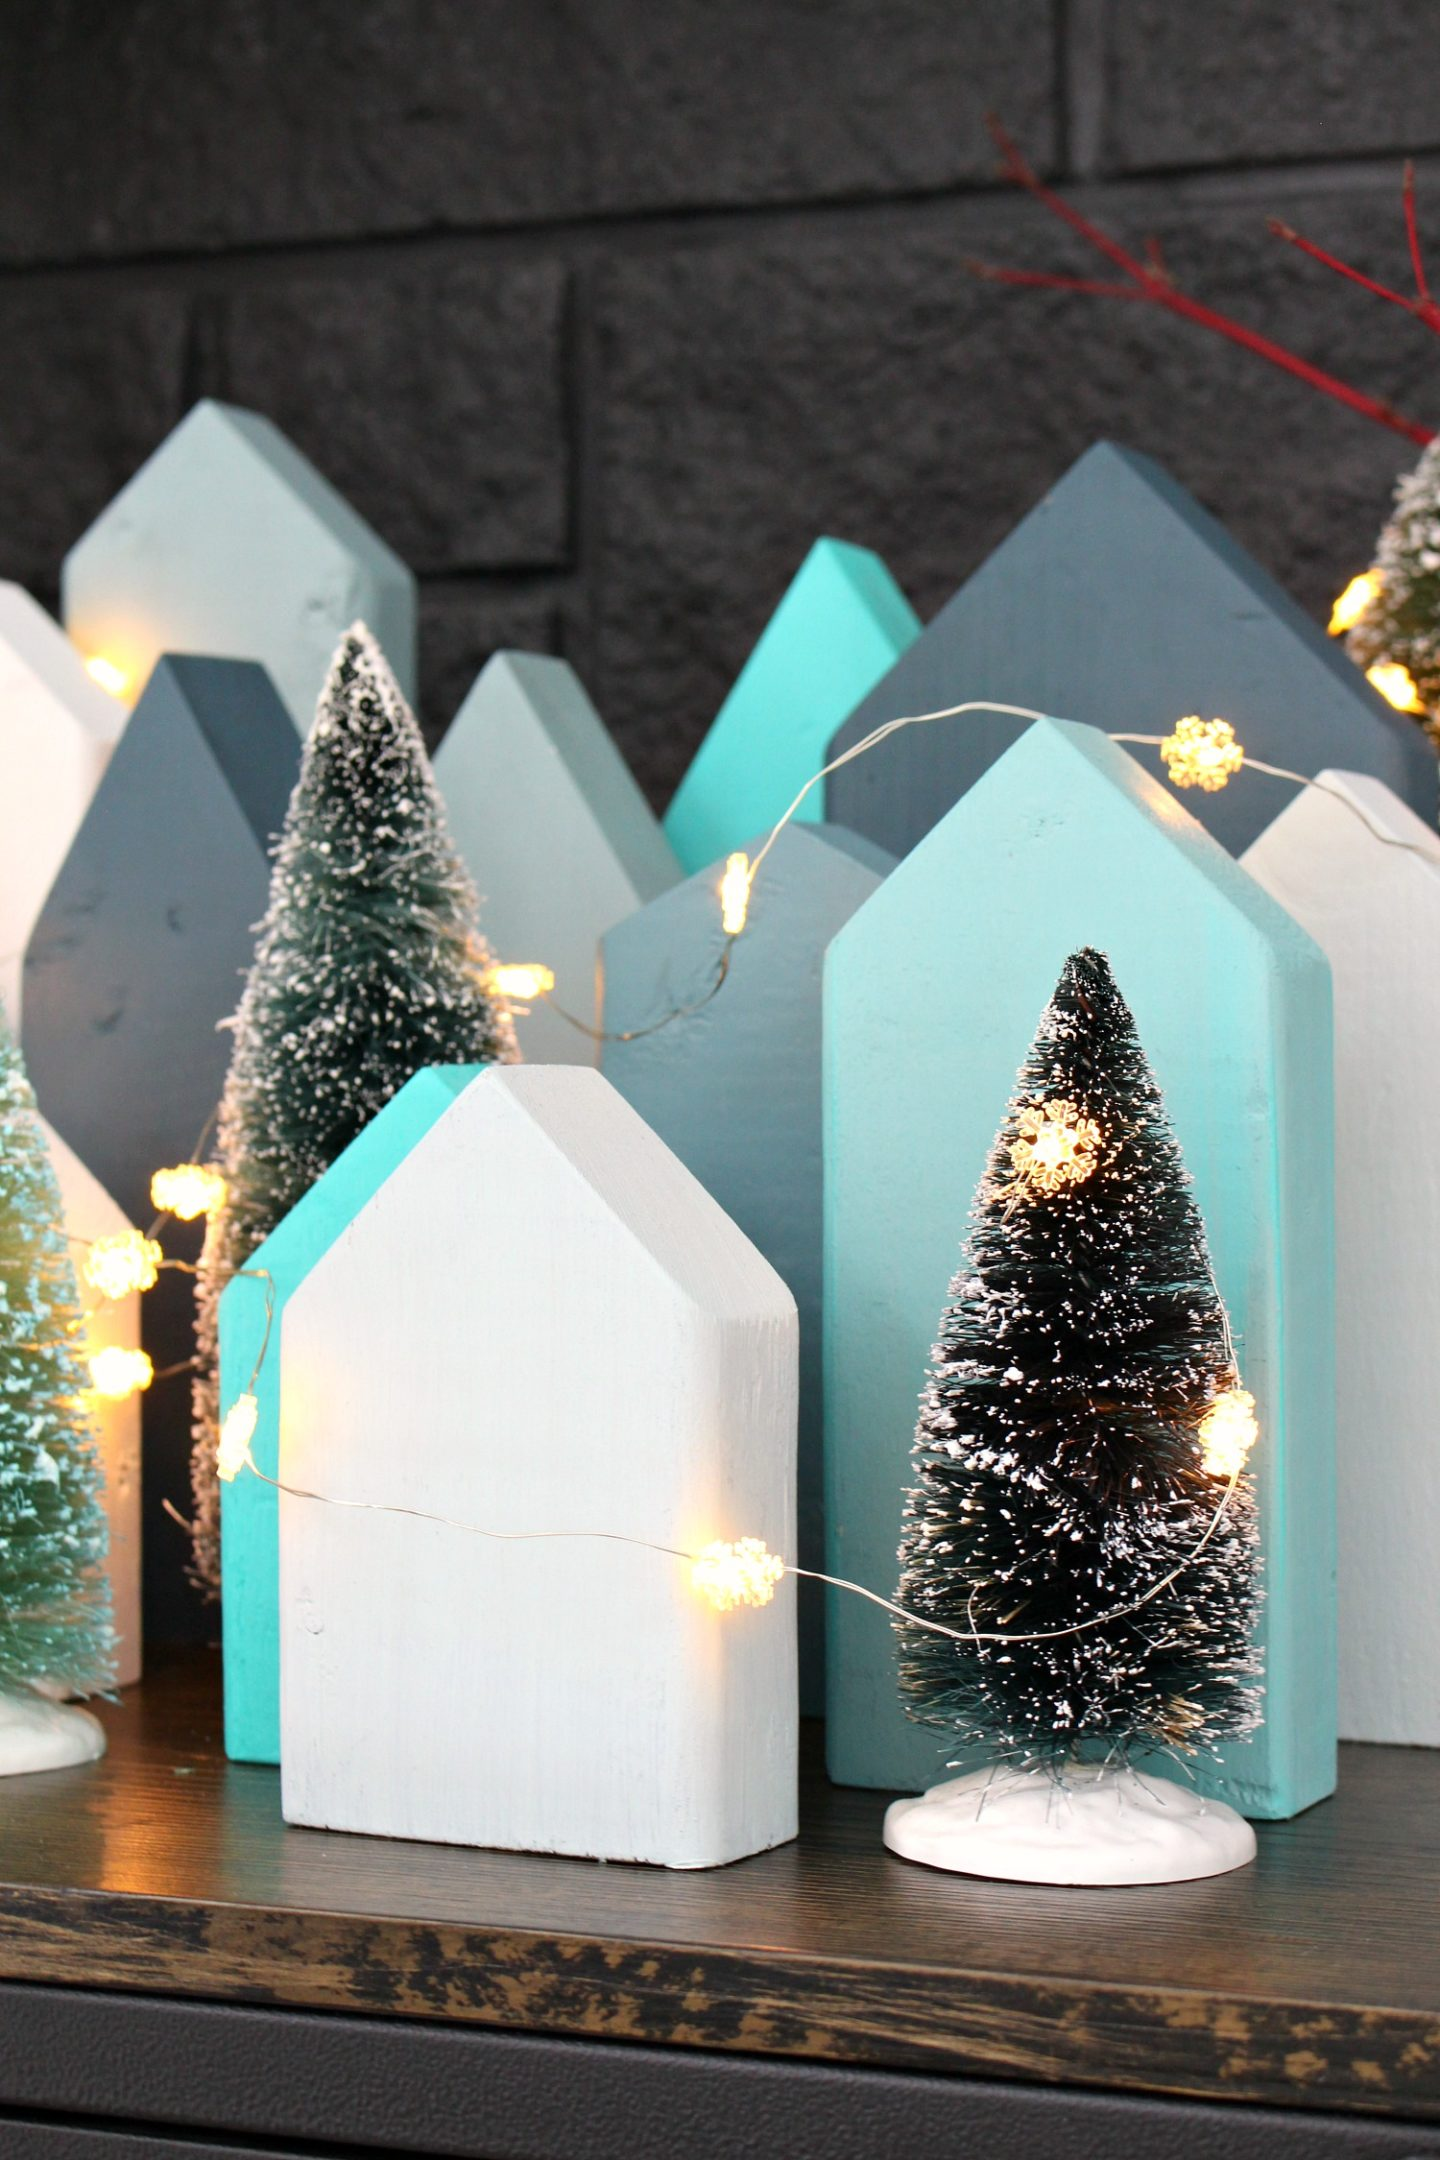 DIY Christmas Village Using Wood Scraps